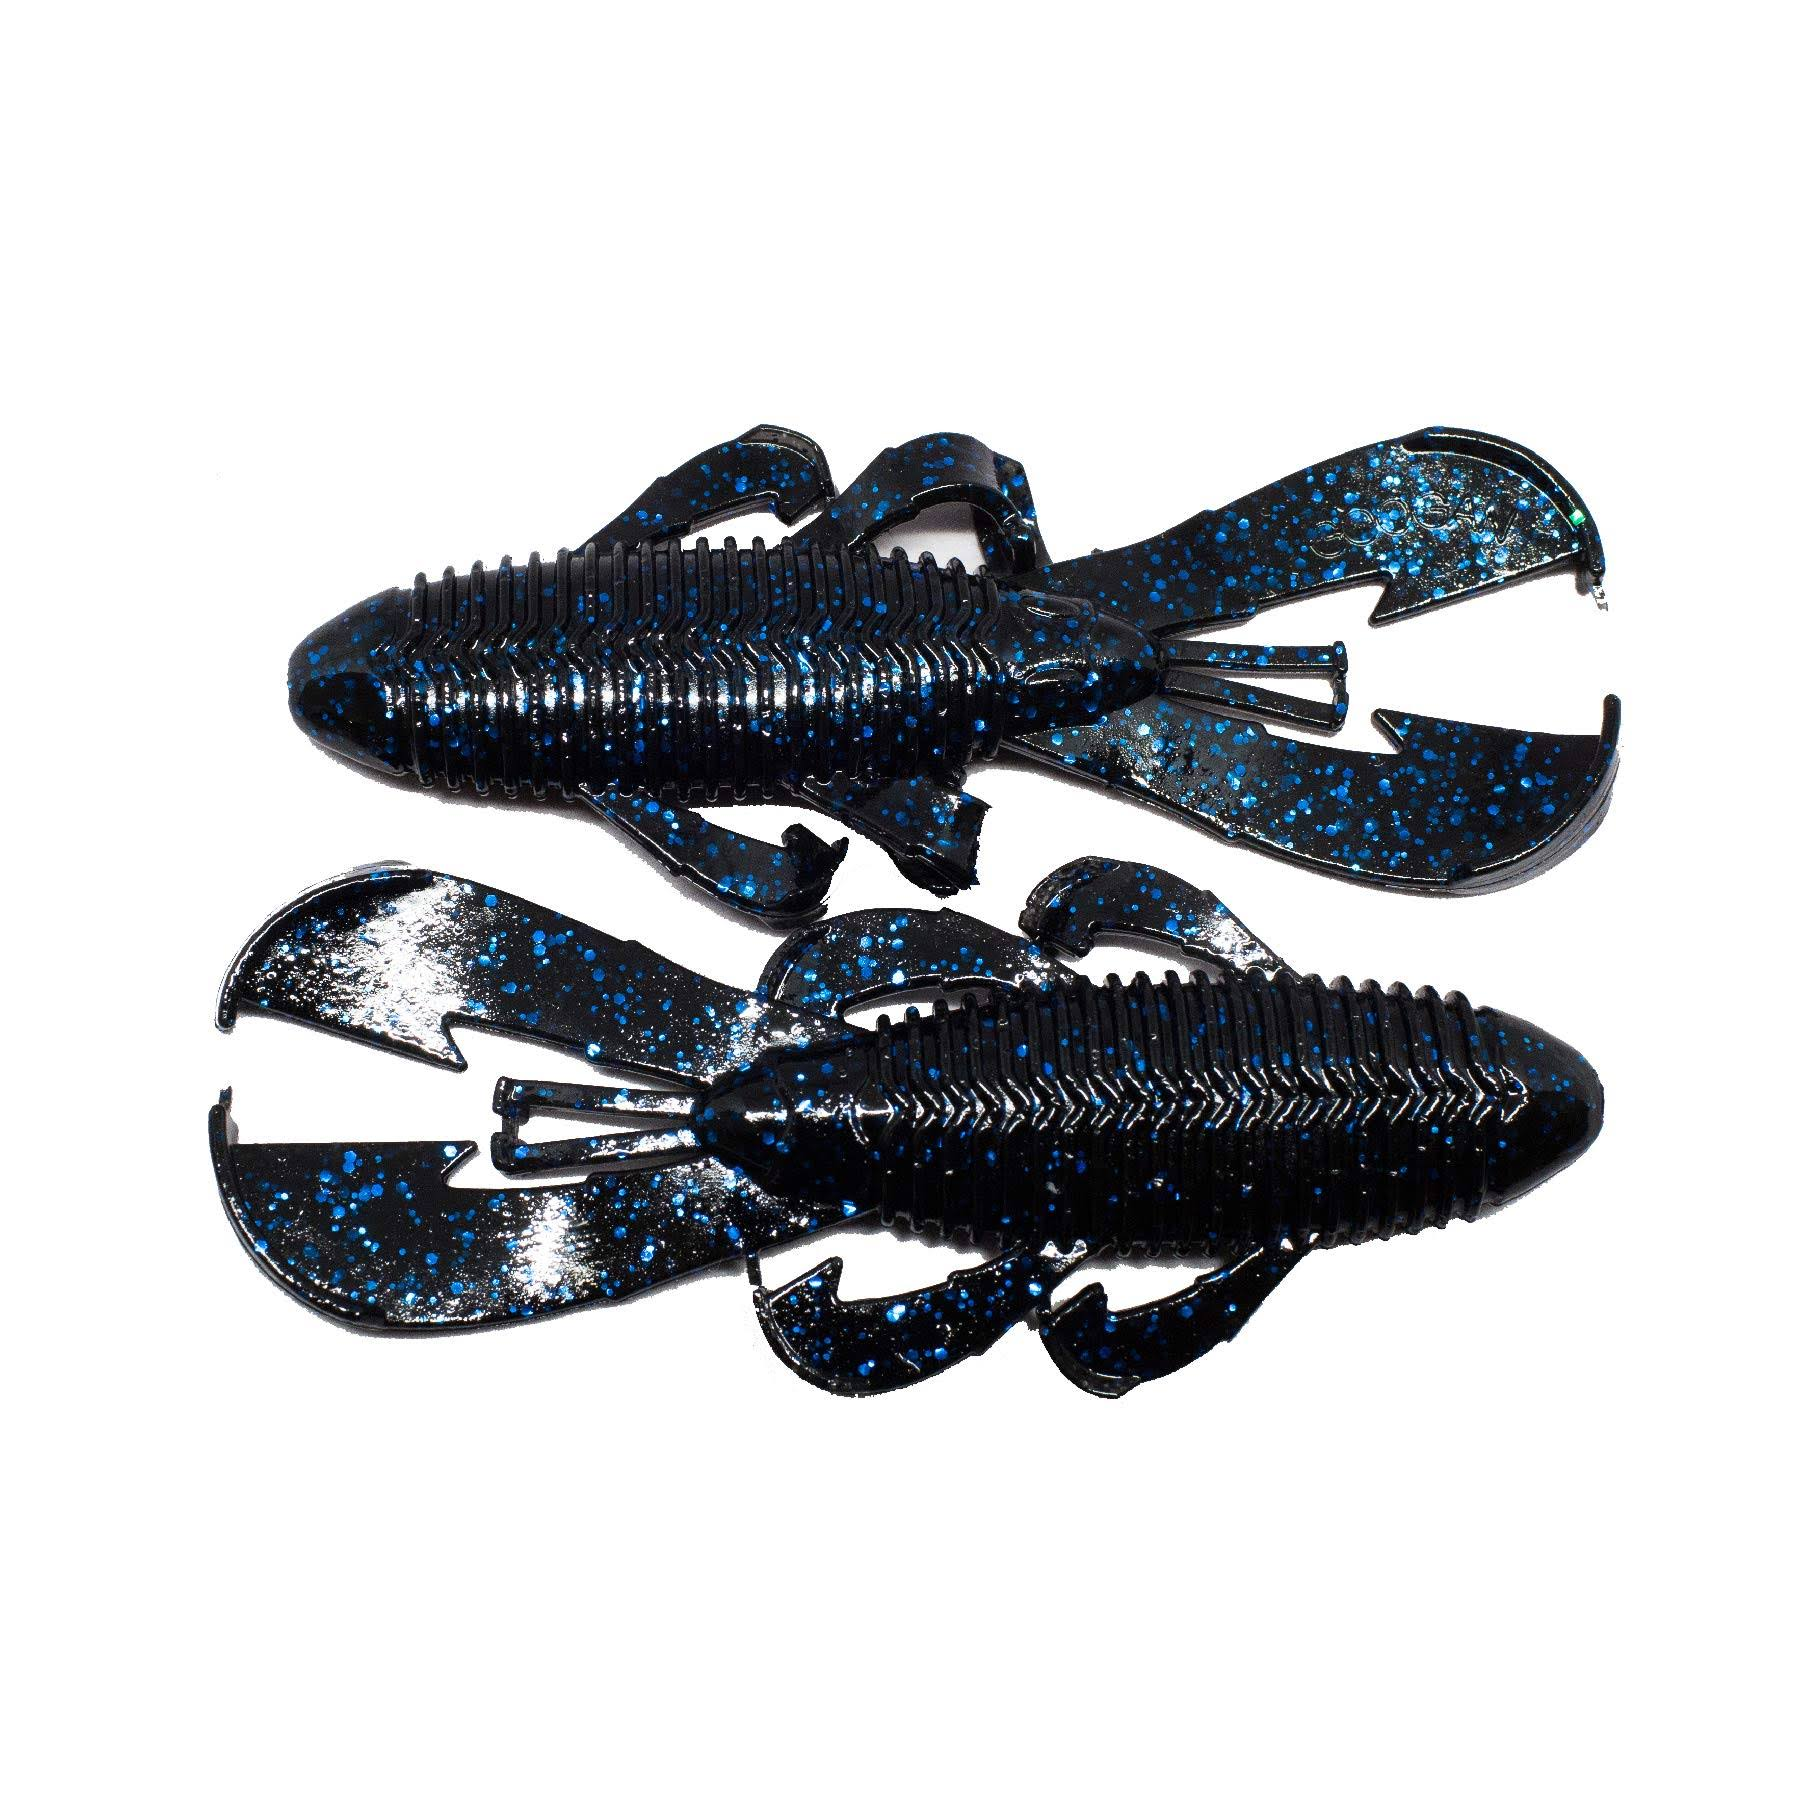 Googan Baits Bandito Bug - Black Blue Flake